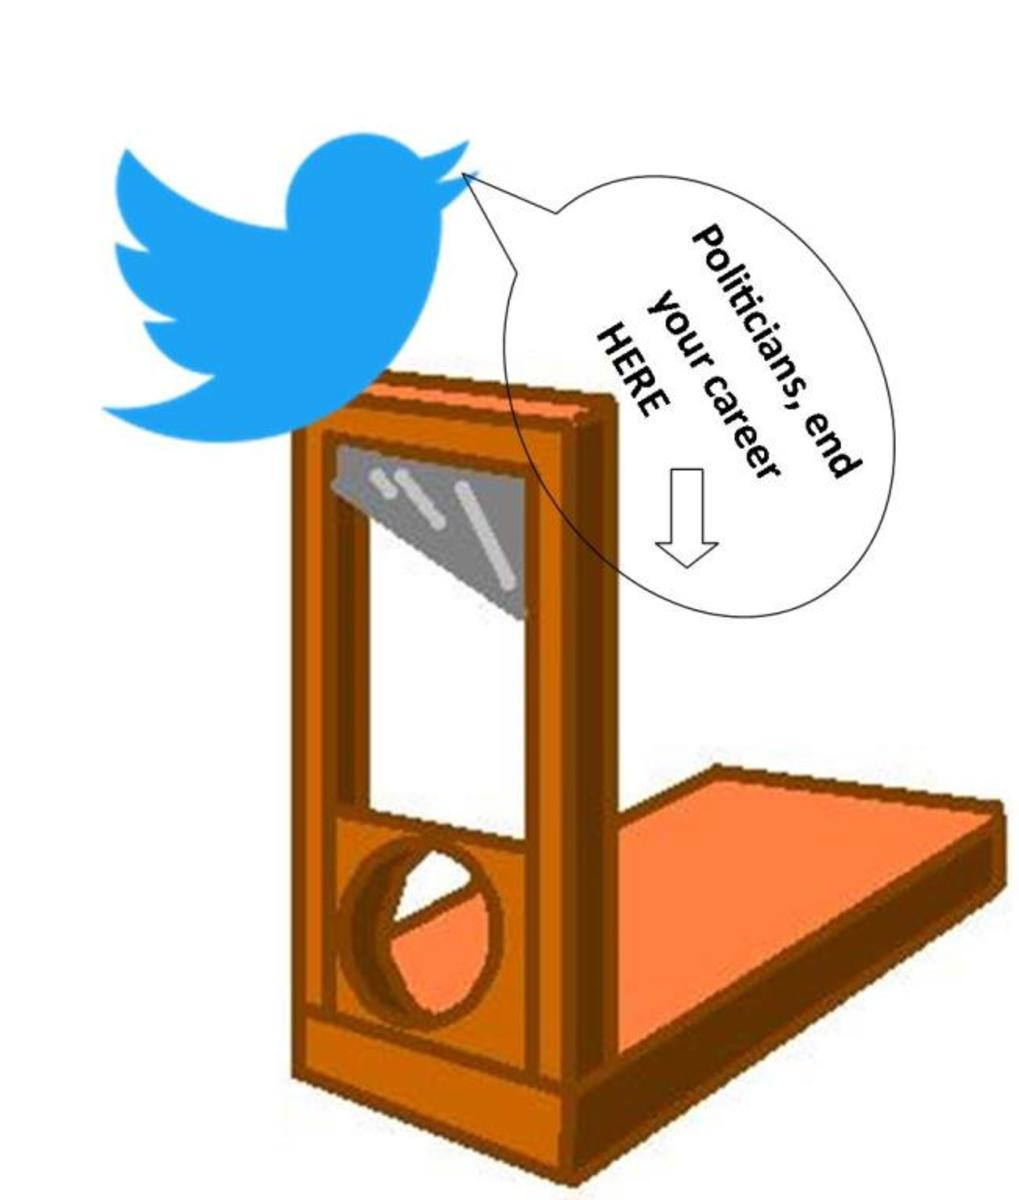 Twitter: The Politician's Guillotine